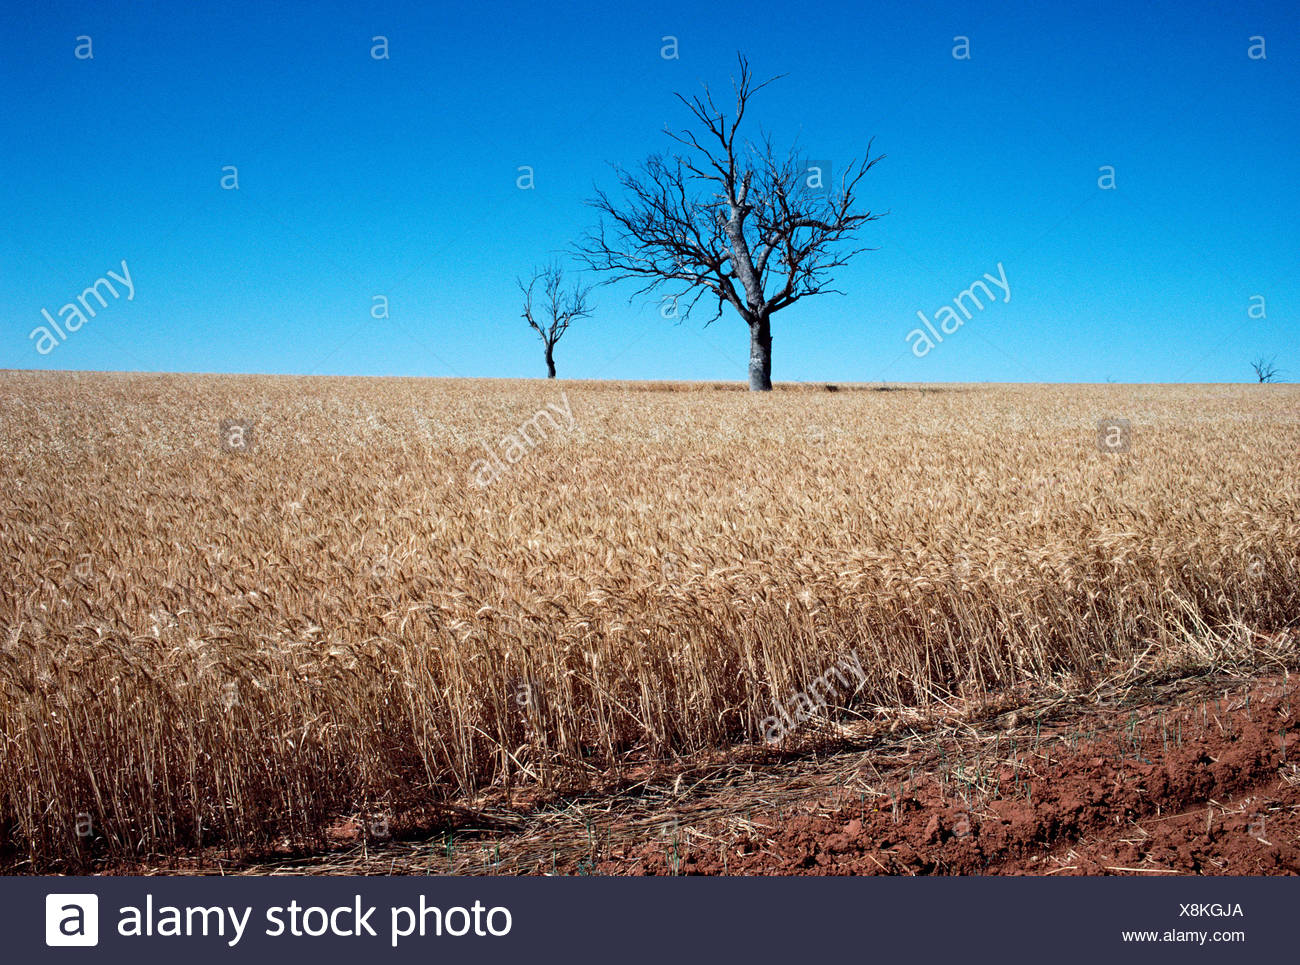 Australia.  New South Wales. Agriculture. Ripe wheat crop field with trees. - Stock Image